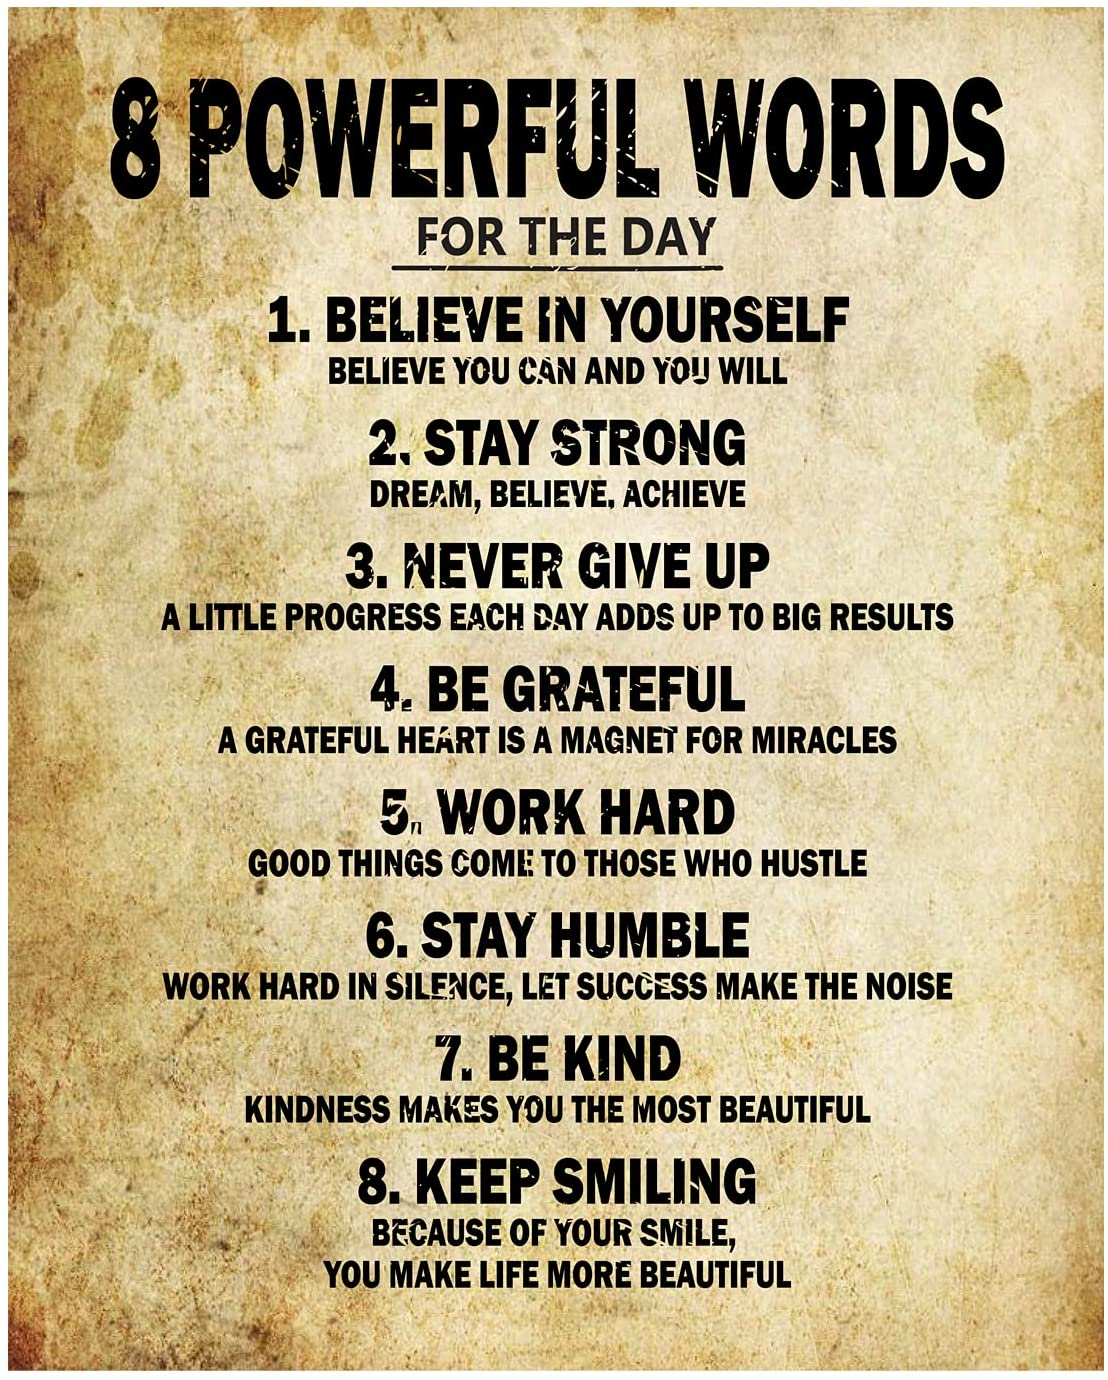 Motivational Quotes 8 Powerful Words for the day Poster Thick Cardstock Paper, Ready to be Framed 8